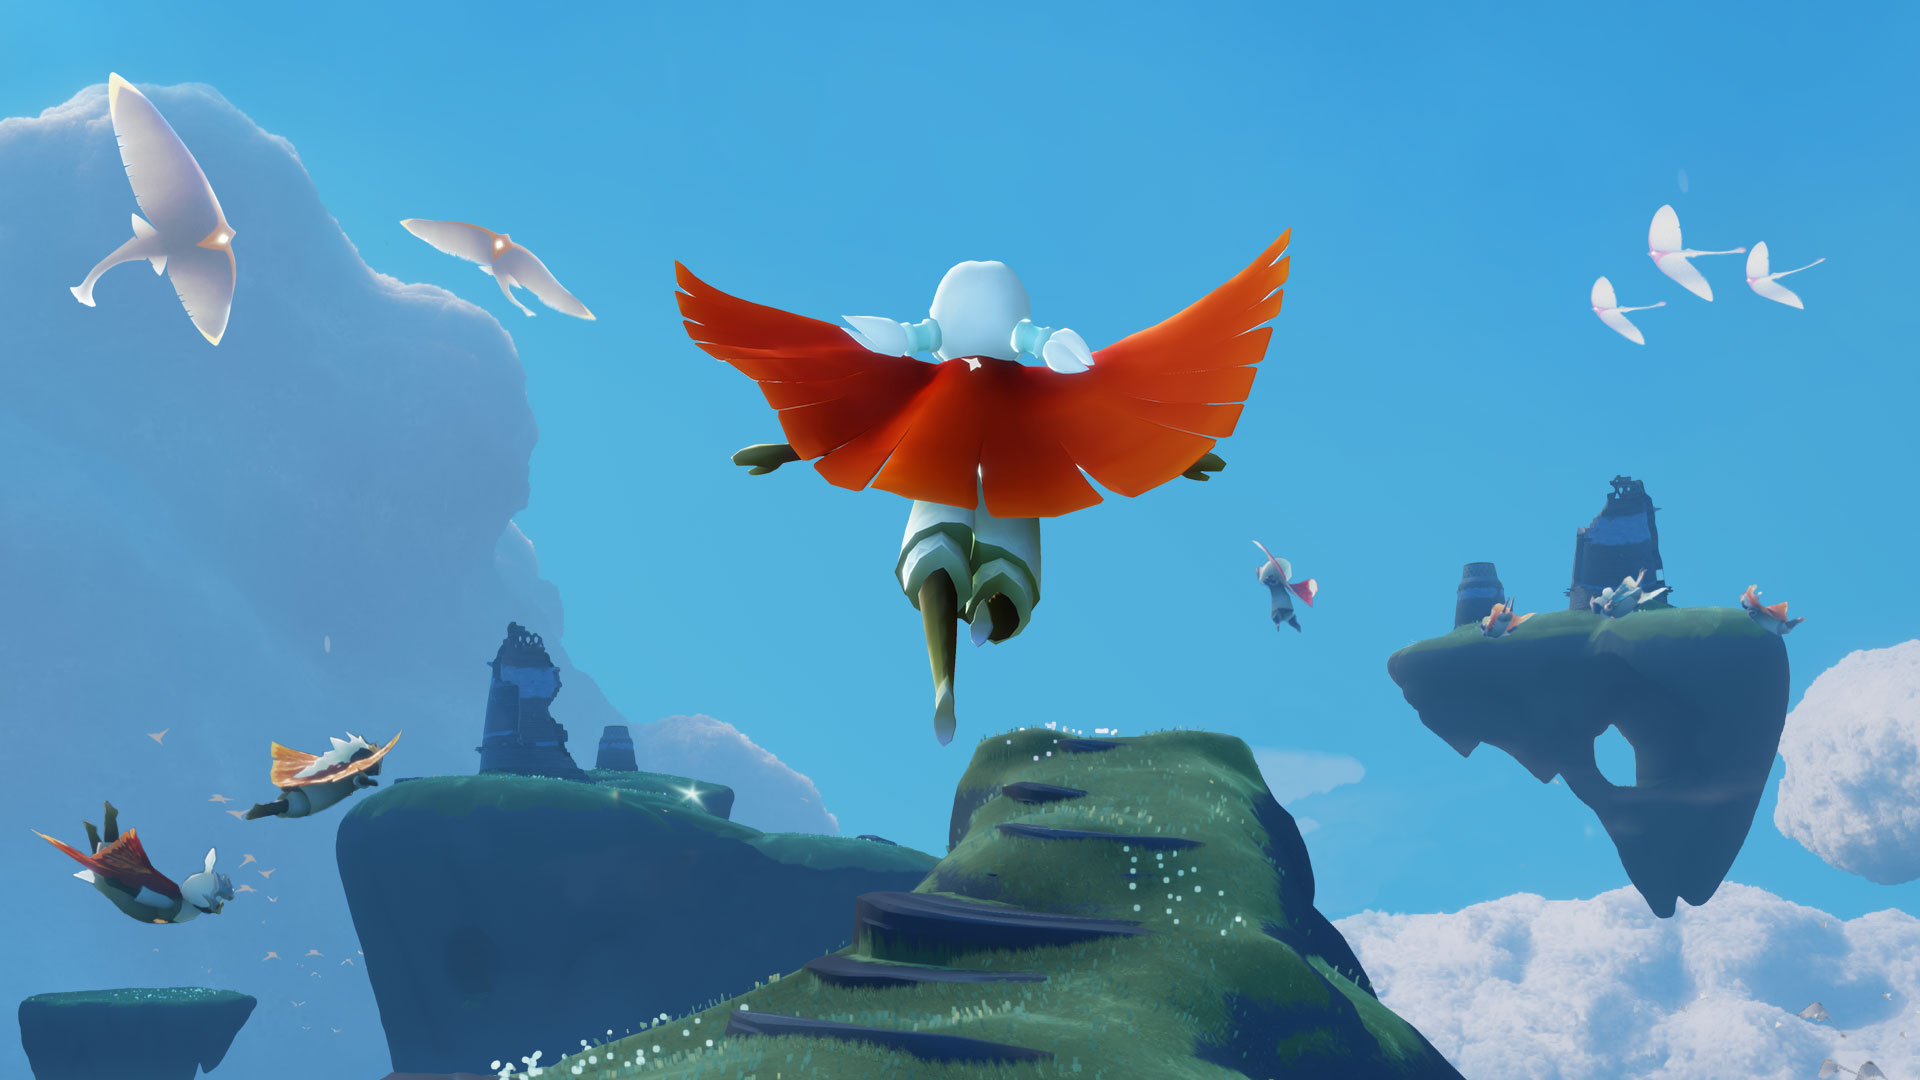 Journey dev's latest game Sky: Children of the Light seemingly coming to Switch with cross-play support